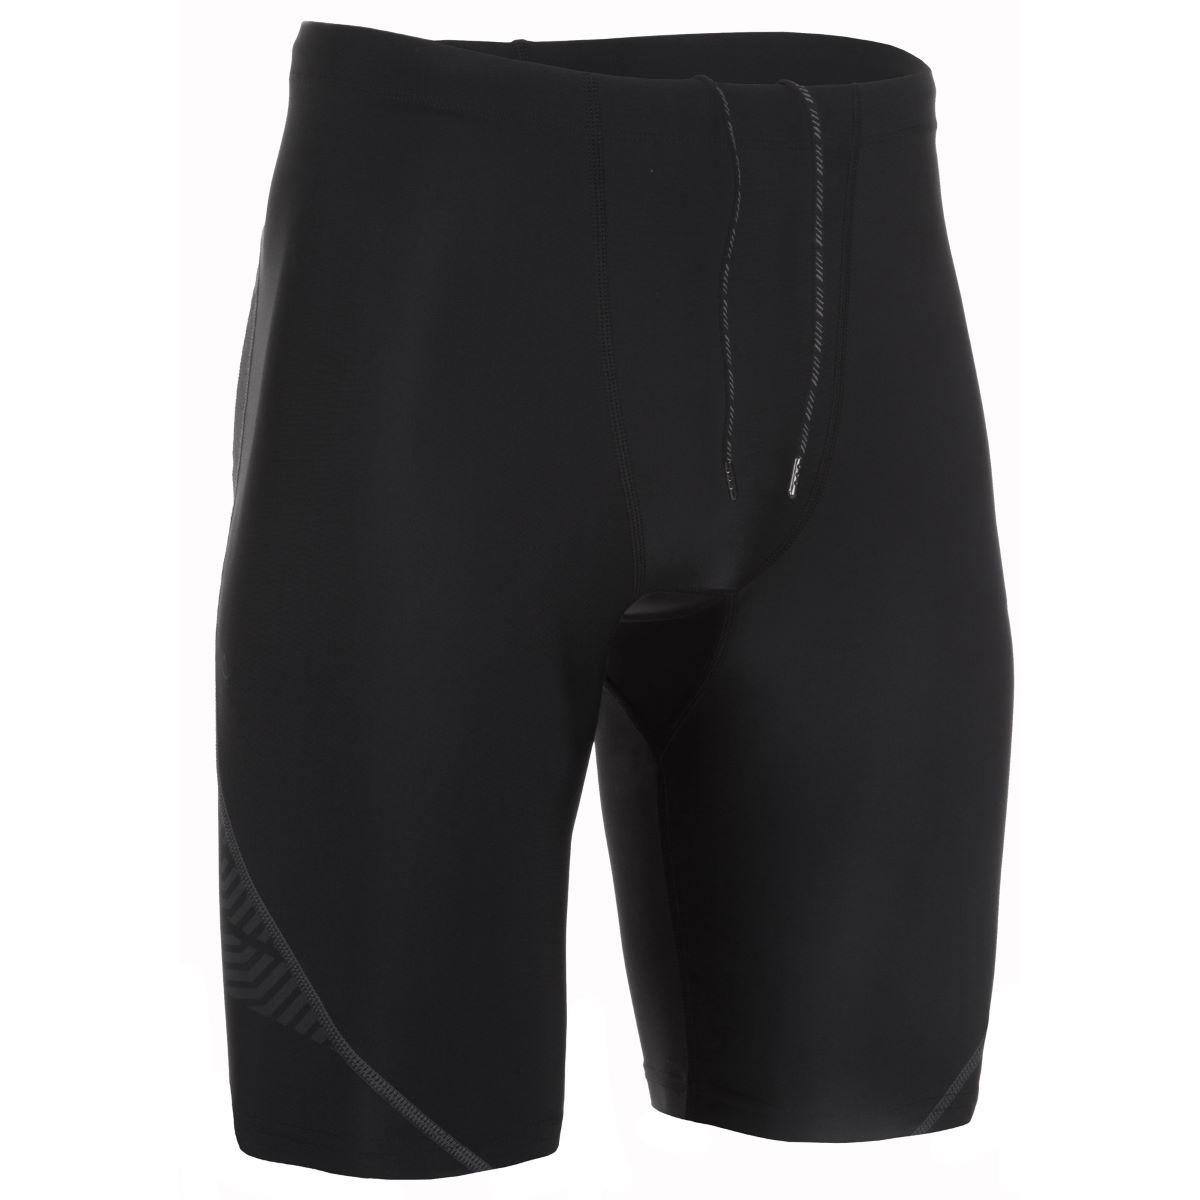 Cuissard court dhb Powerguard (compression) - L Noir Sous-vêtements compression